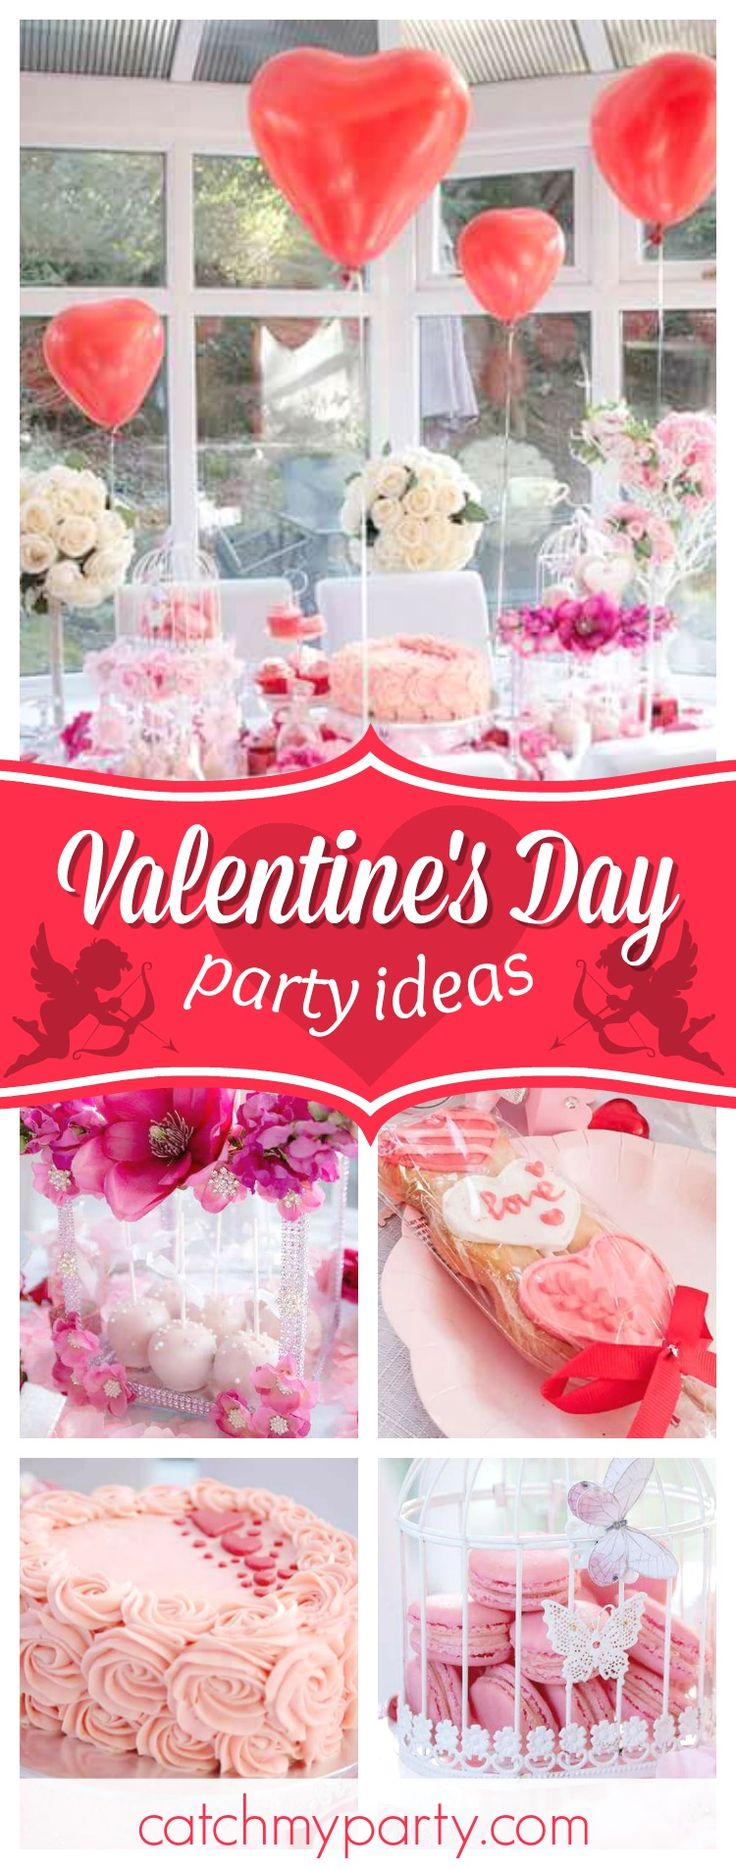 Calendar Party Ideas : Best valentine s day party ideas images on pinterest